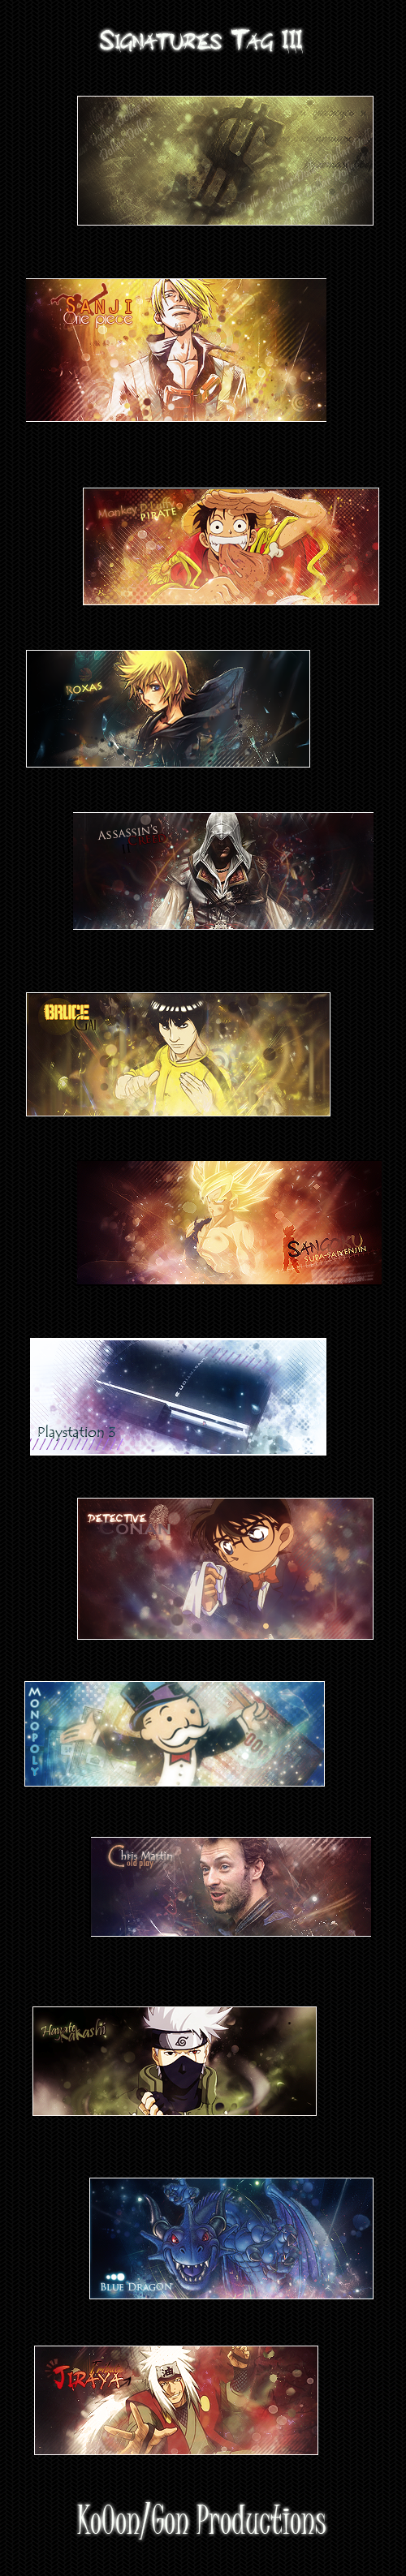 ~|²#Gon's_Gallery#²|~ Signature_wall_III_by_Ko0on